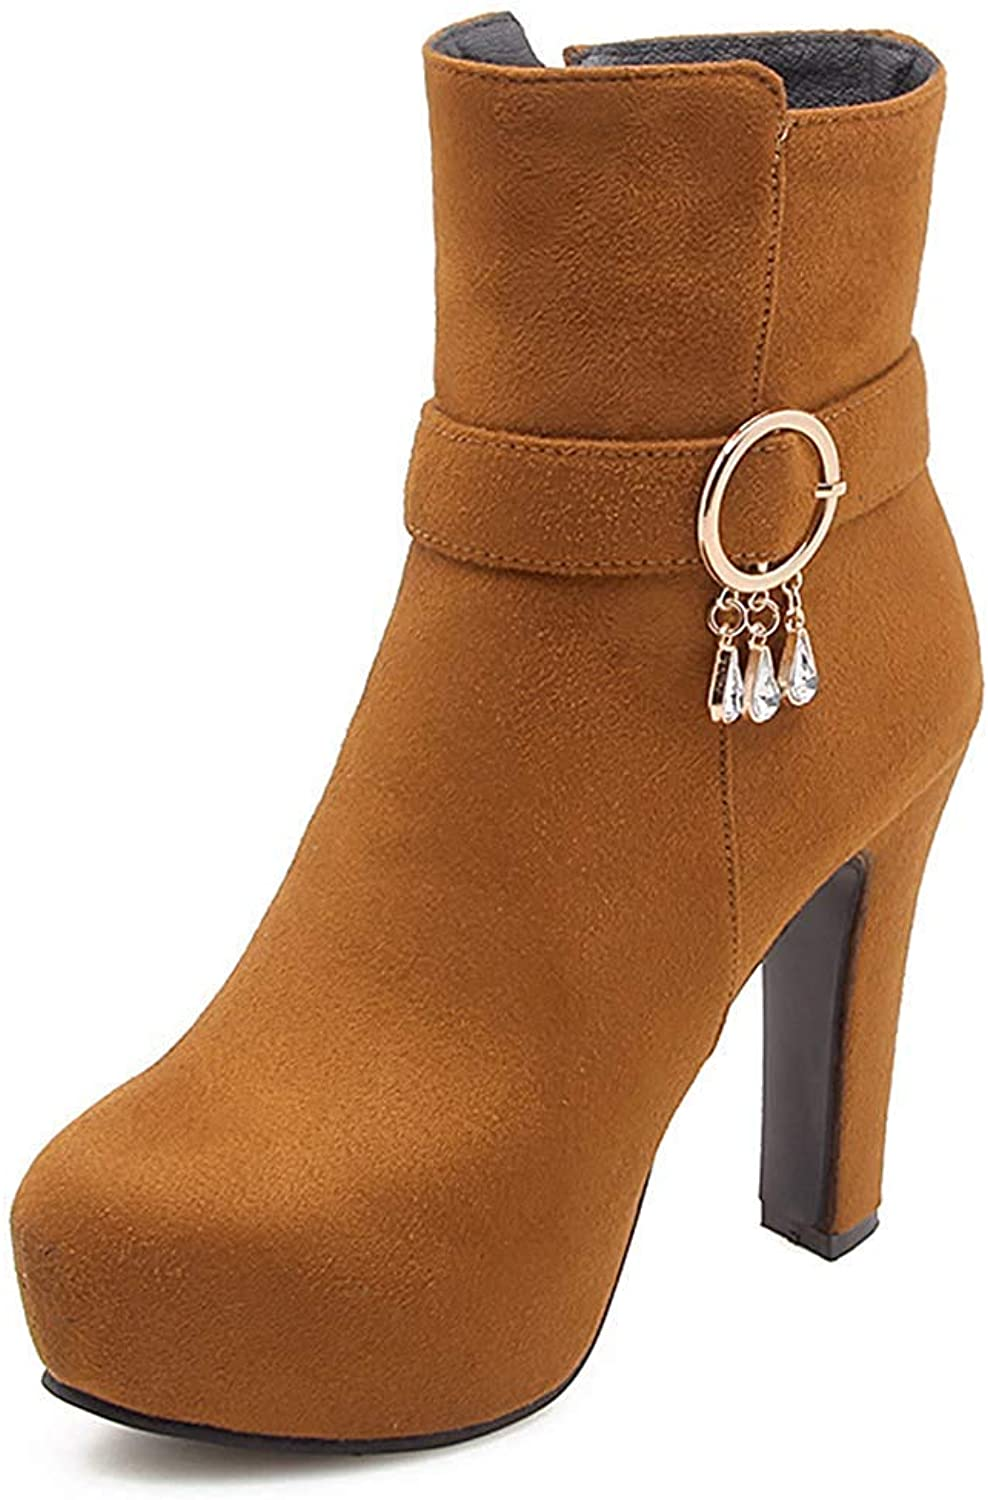 Women's Fashion Faux Suede Round Toe Rhinestone Platform High Chunky Heels Short Boots with Side Zipper